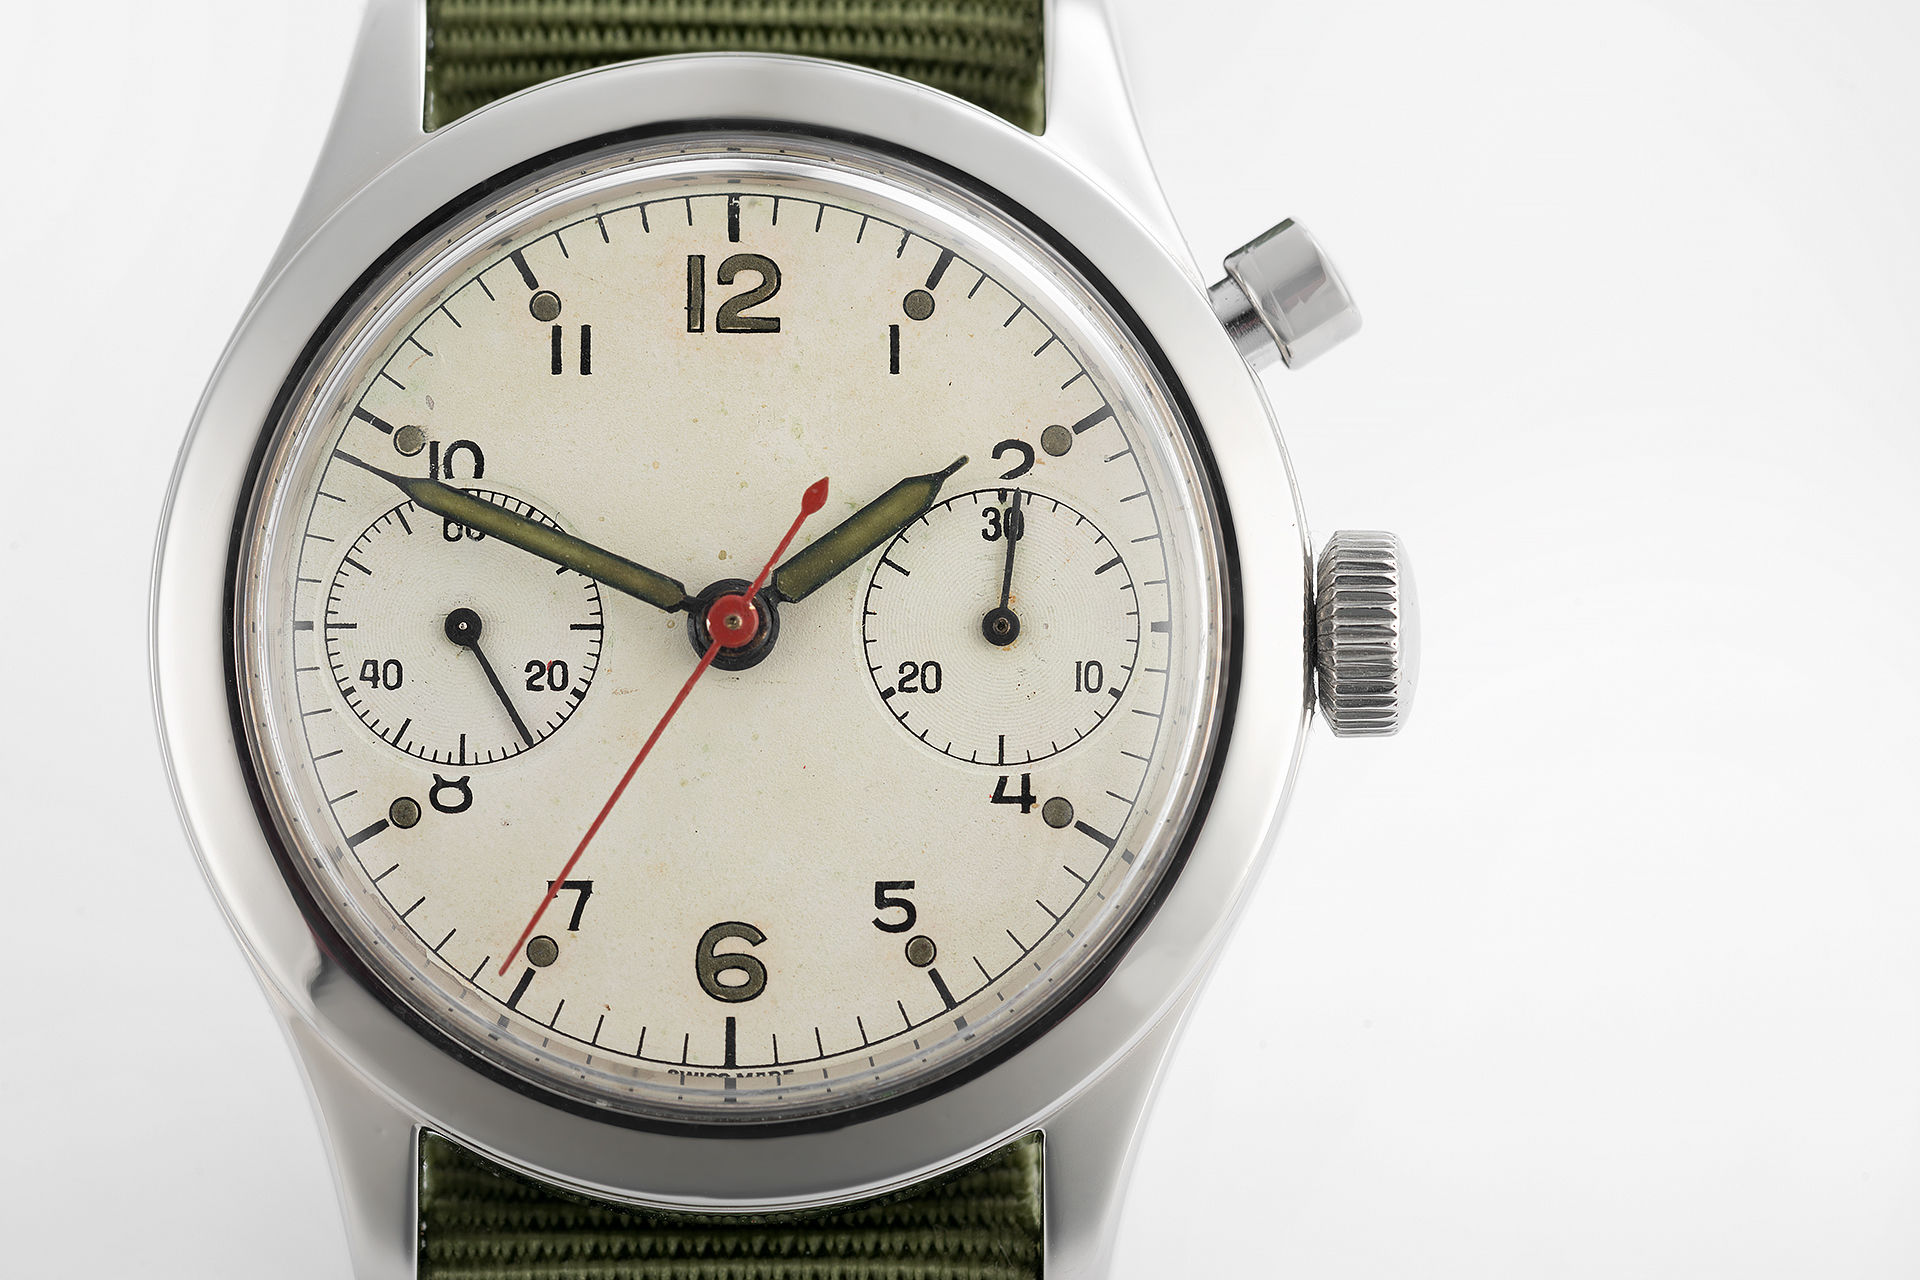 ref 6W/16 | 'Royal Canadian Air Force' | Omega Military